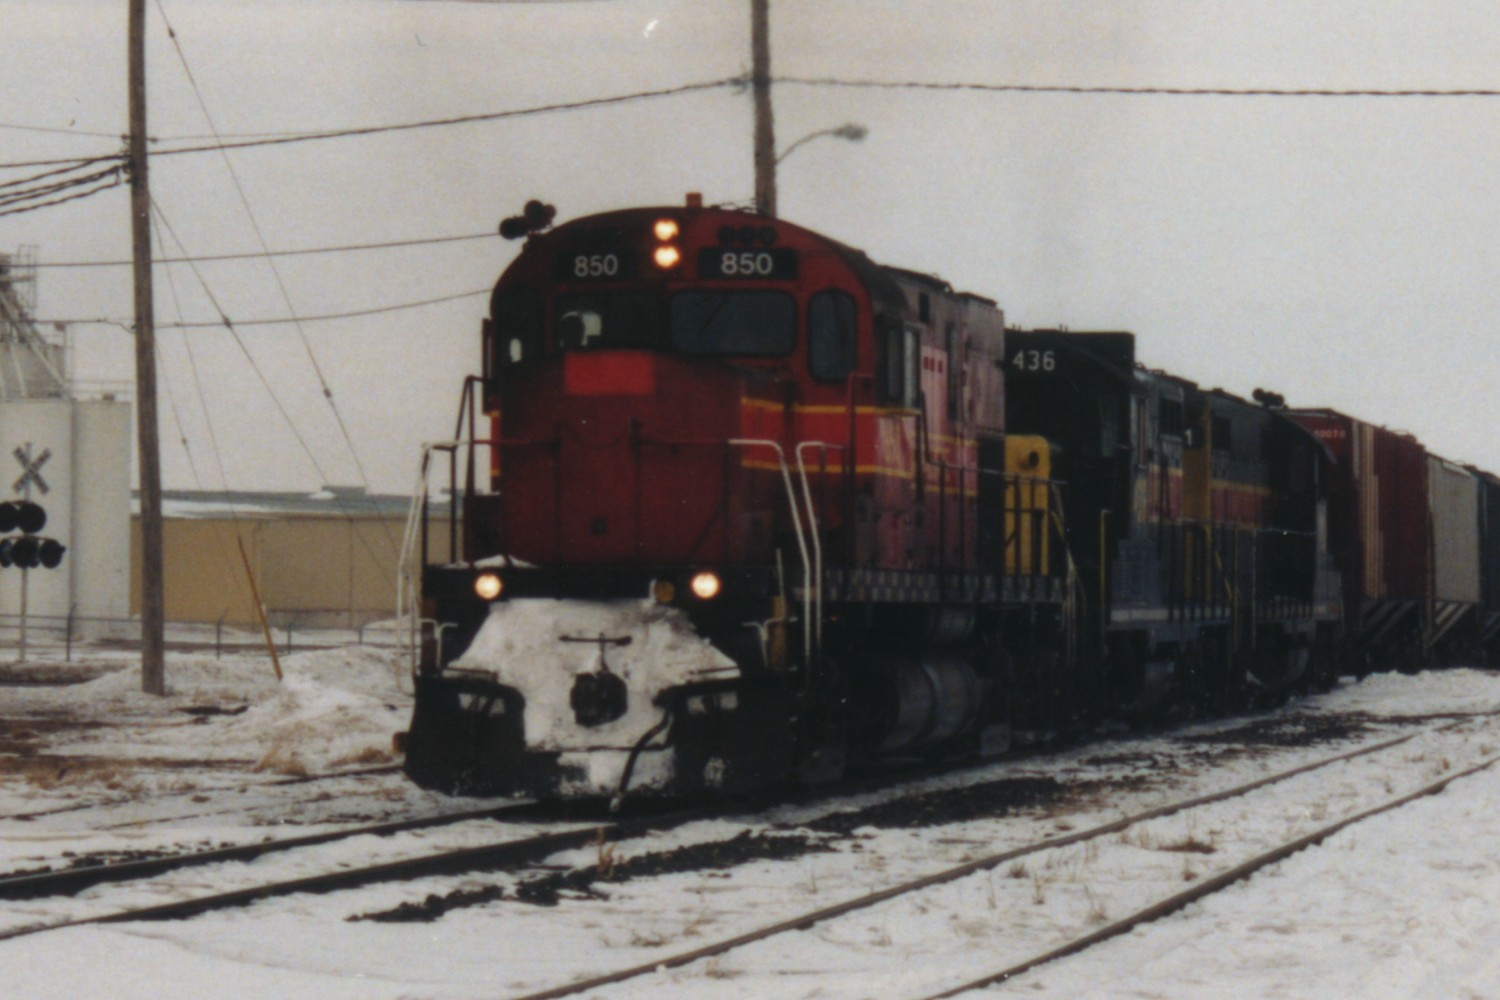 IAIS 850 at Altoona, IA on 27-Feb-1994